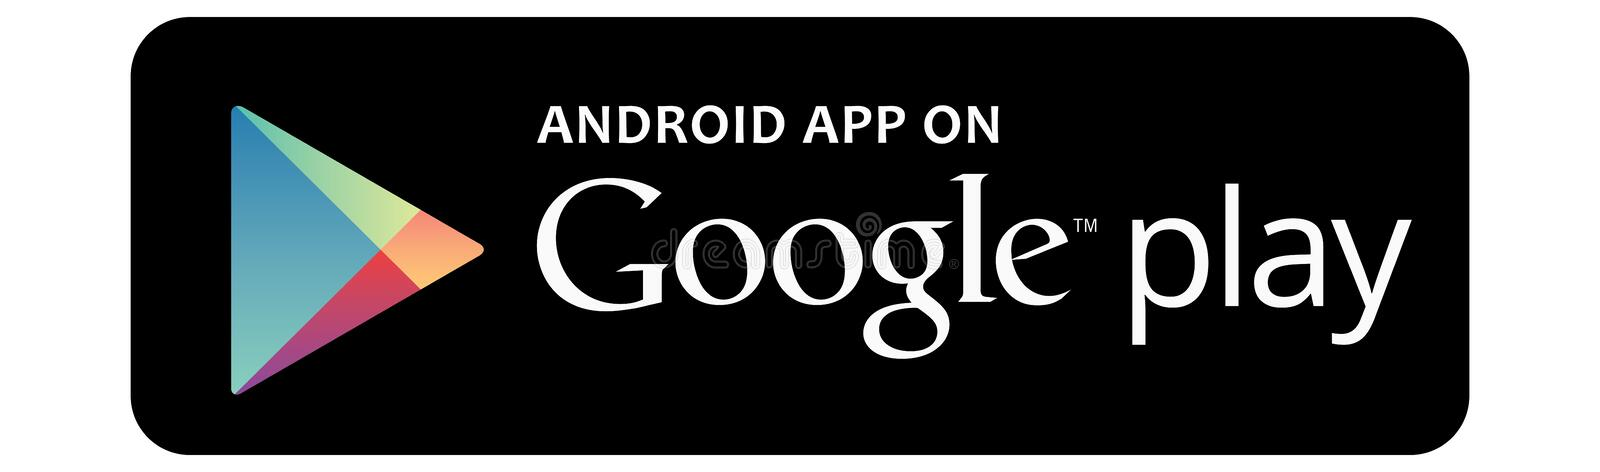 Available on the App Store Google Play Android. Google Play is a digital distribution service operated and developed by Google LLC. It serves as the official app stock illustration